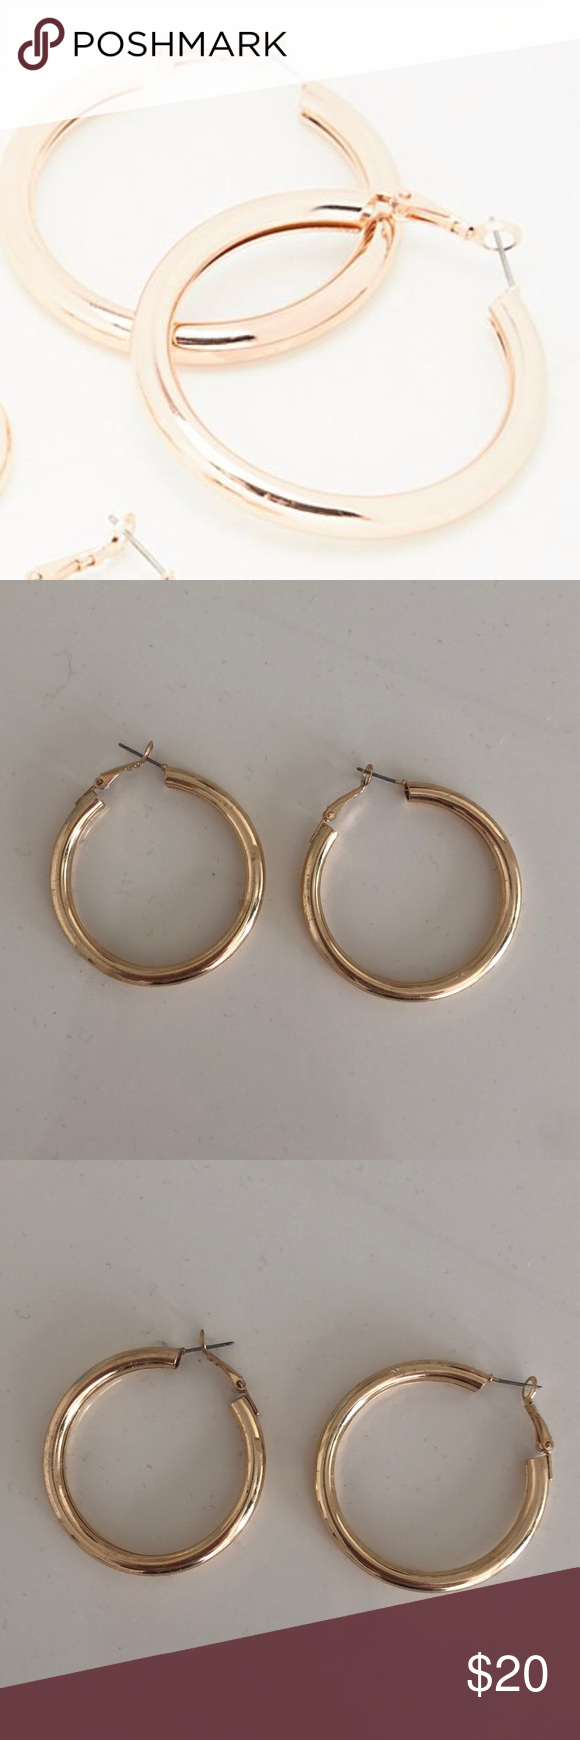 Free People Tube Gold Hoop Earrings